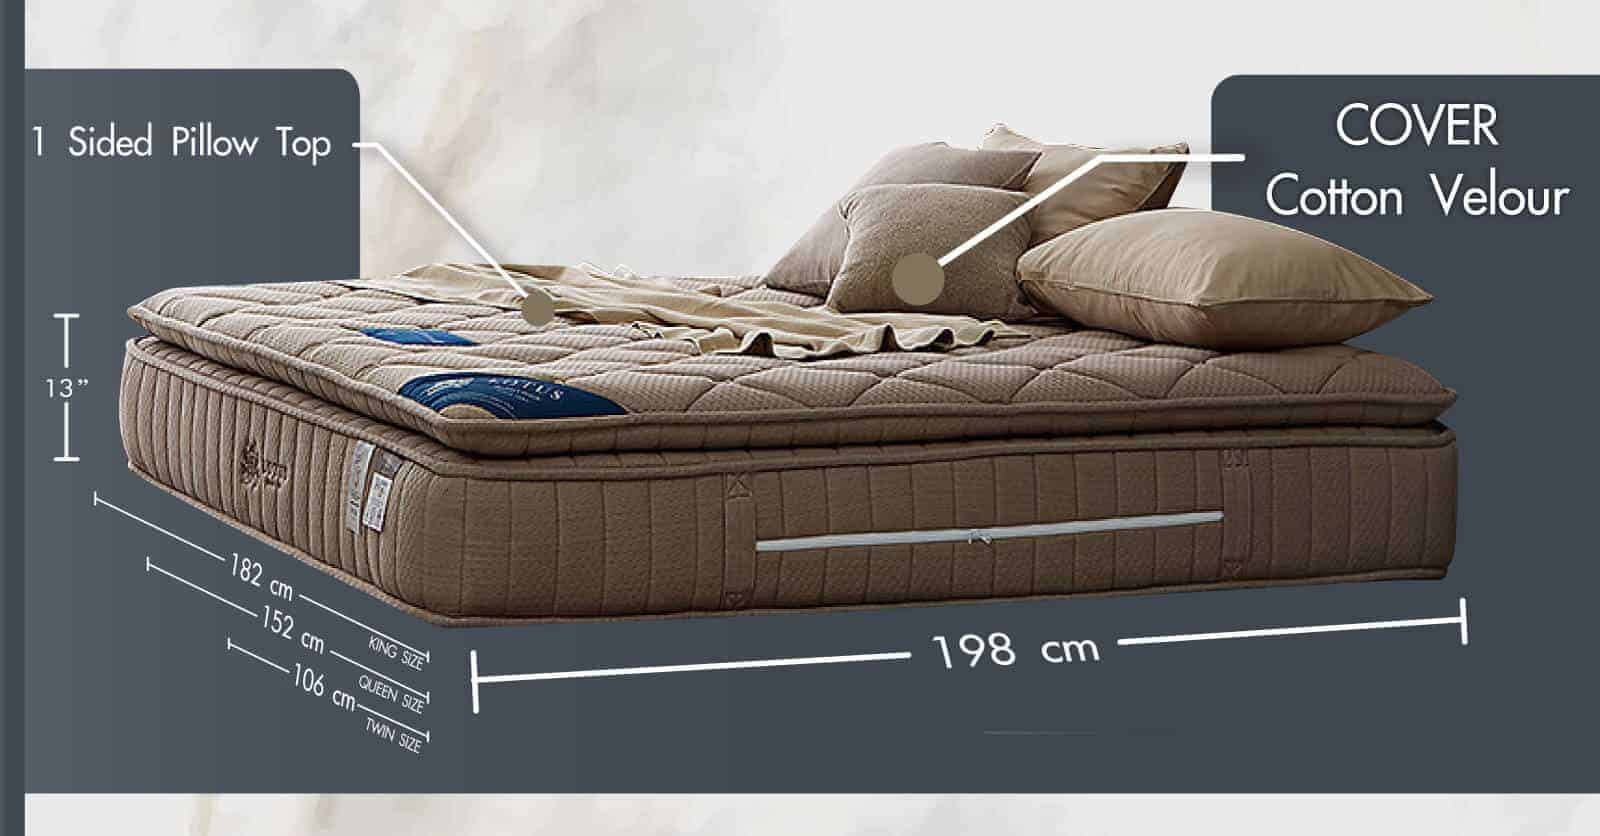 Lotus Foam Spring Mattress Marshall Deluxe III - Good Balance Mattress - Thickness 13 inches - Warranty 10 years 7